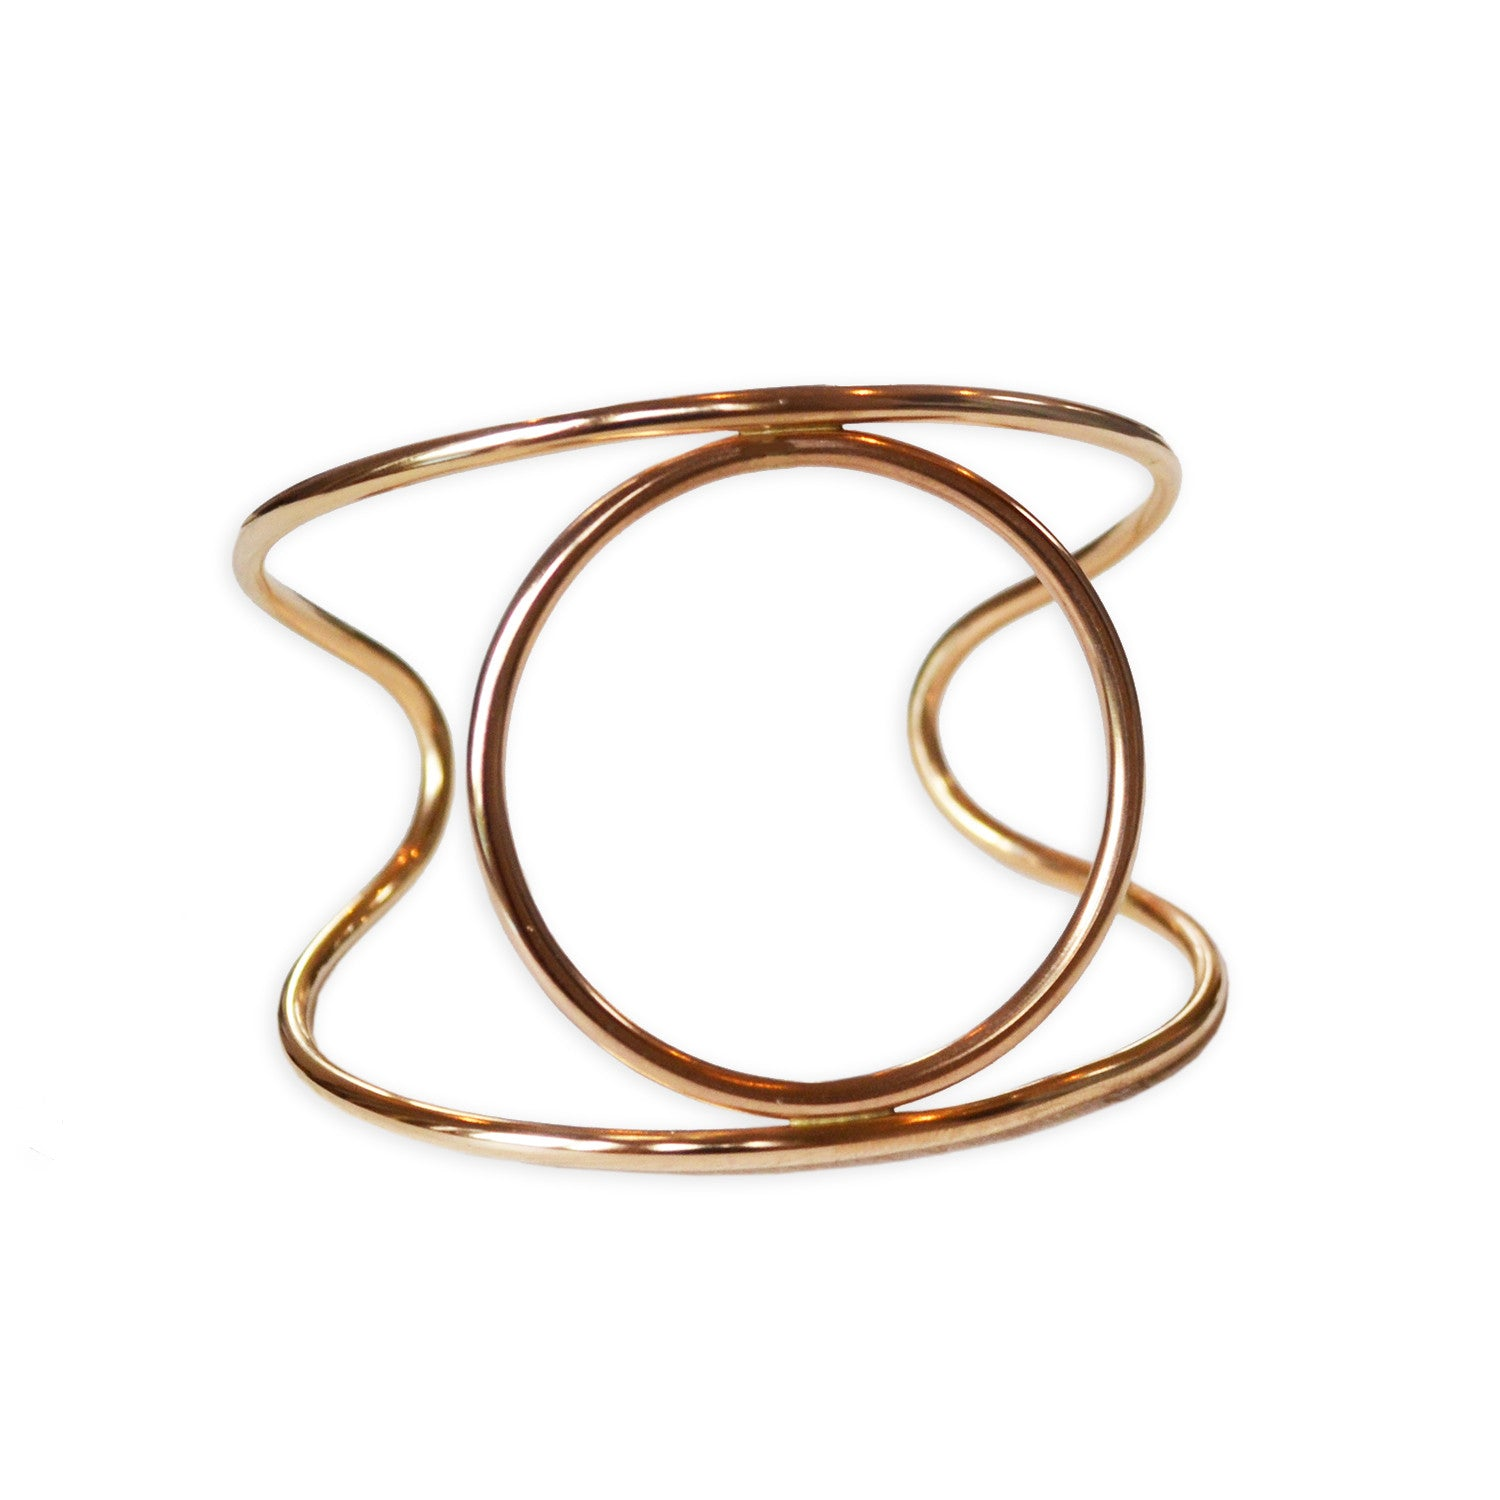 Atomic Circle Cuff Bracelet, Gold Filled or Sterling Silver